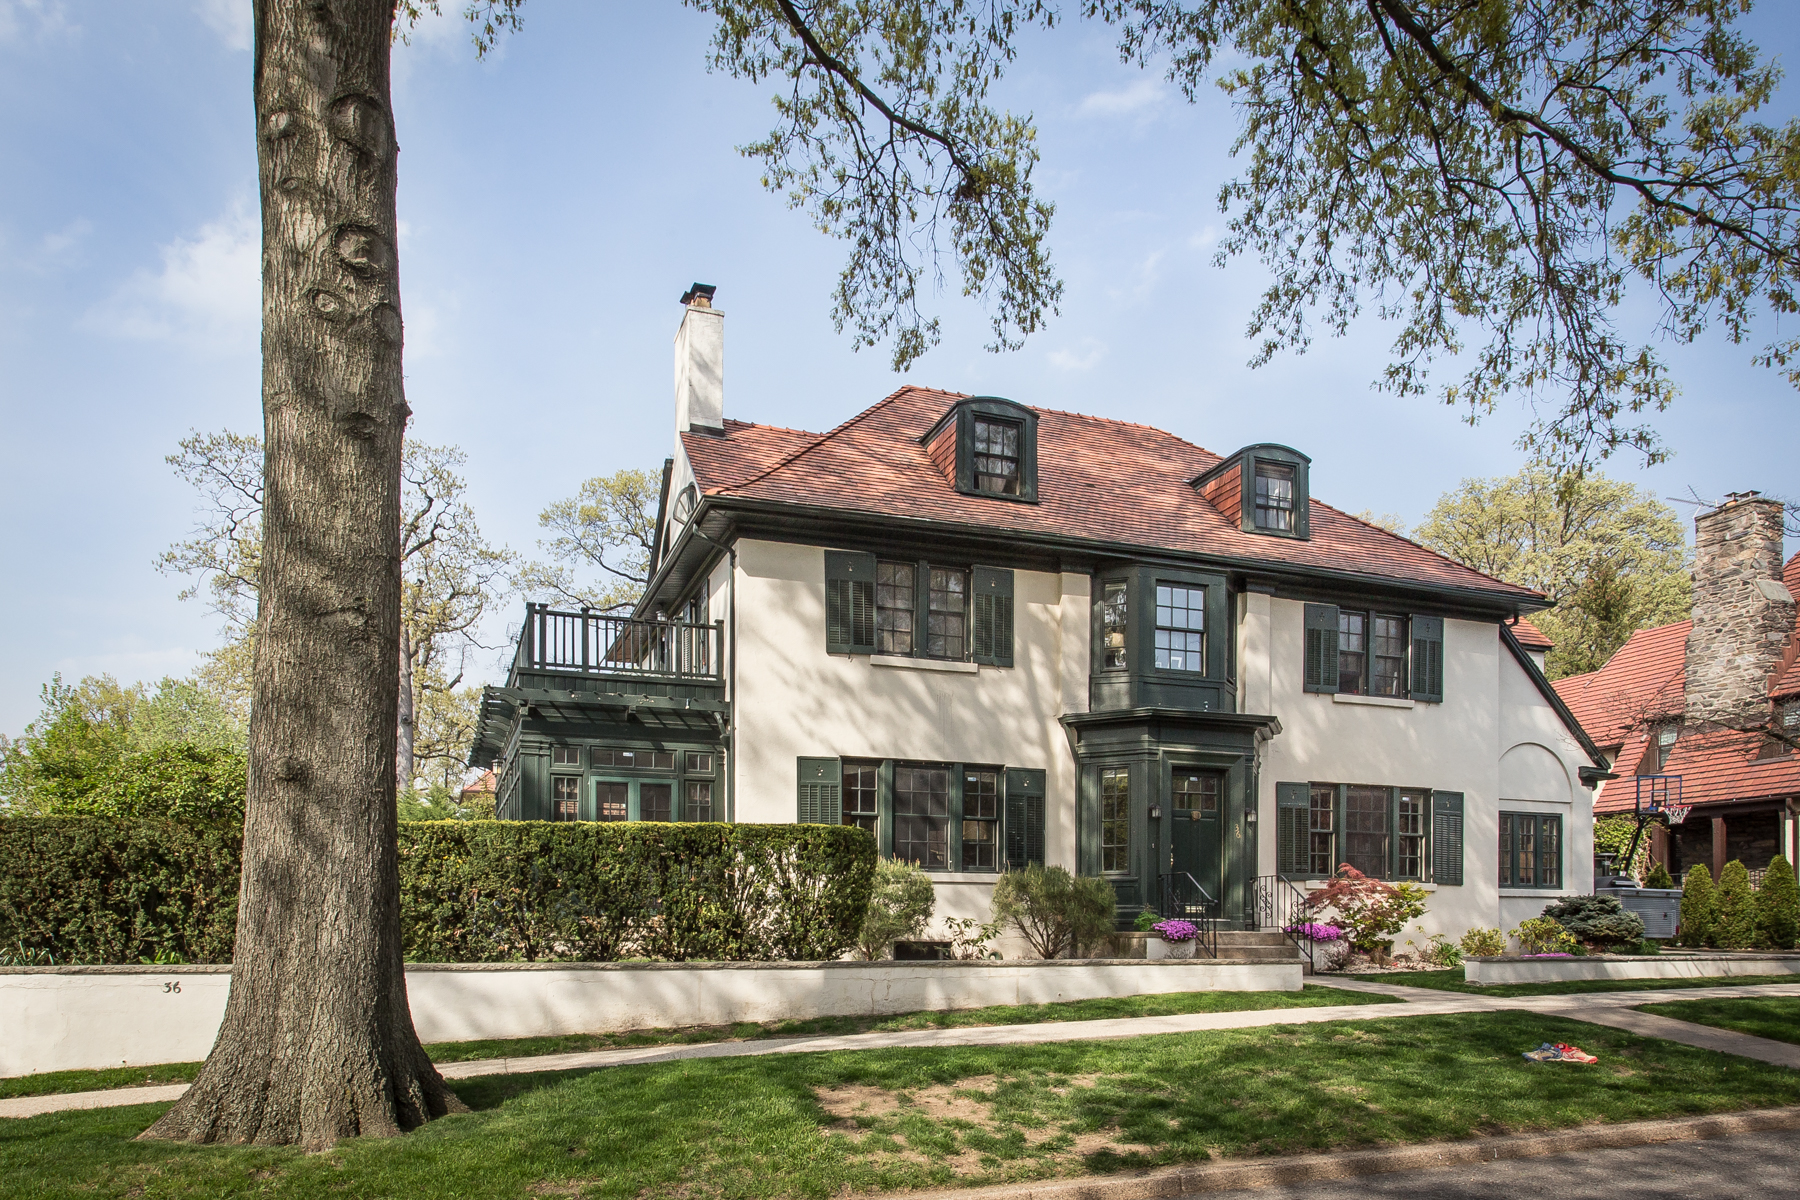 """Single Family Home for Rent at """"SOPHISTICATED RENTAL IN PRIME GARDENS LOCATION"""" Forest Hills, New York 11375 United States"""